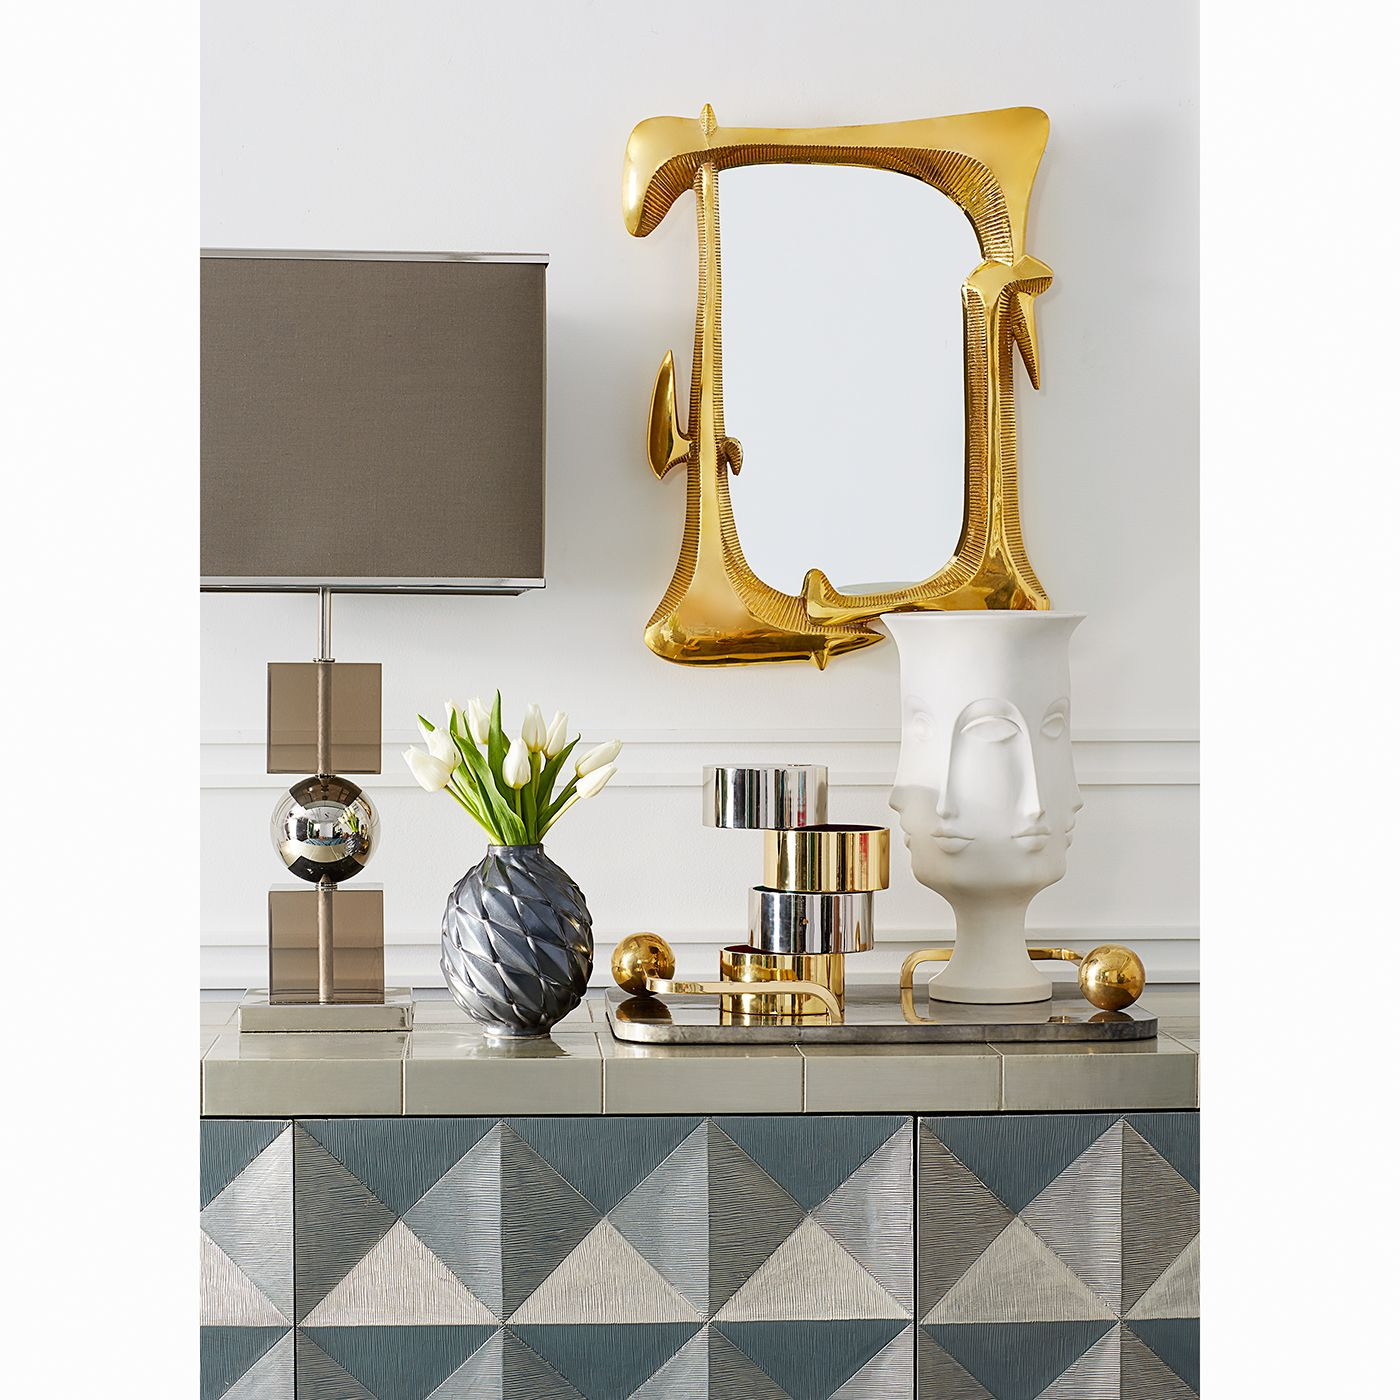 http://www.jonathanadler.com/decor-and-pillows/mirrors-and-wall-decor/mirrors/reform-mirror/22338.html